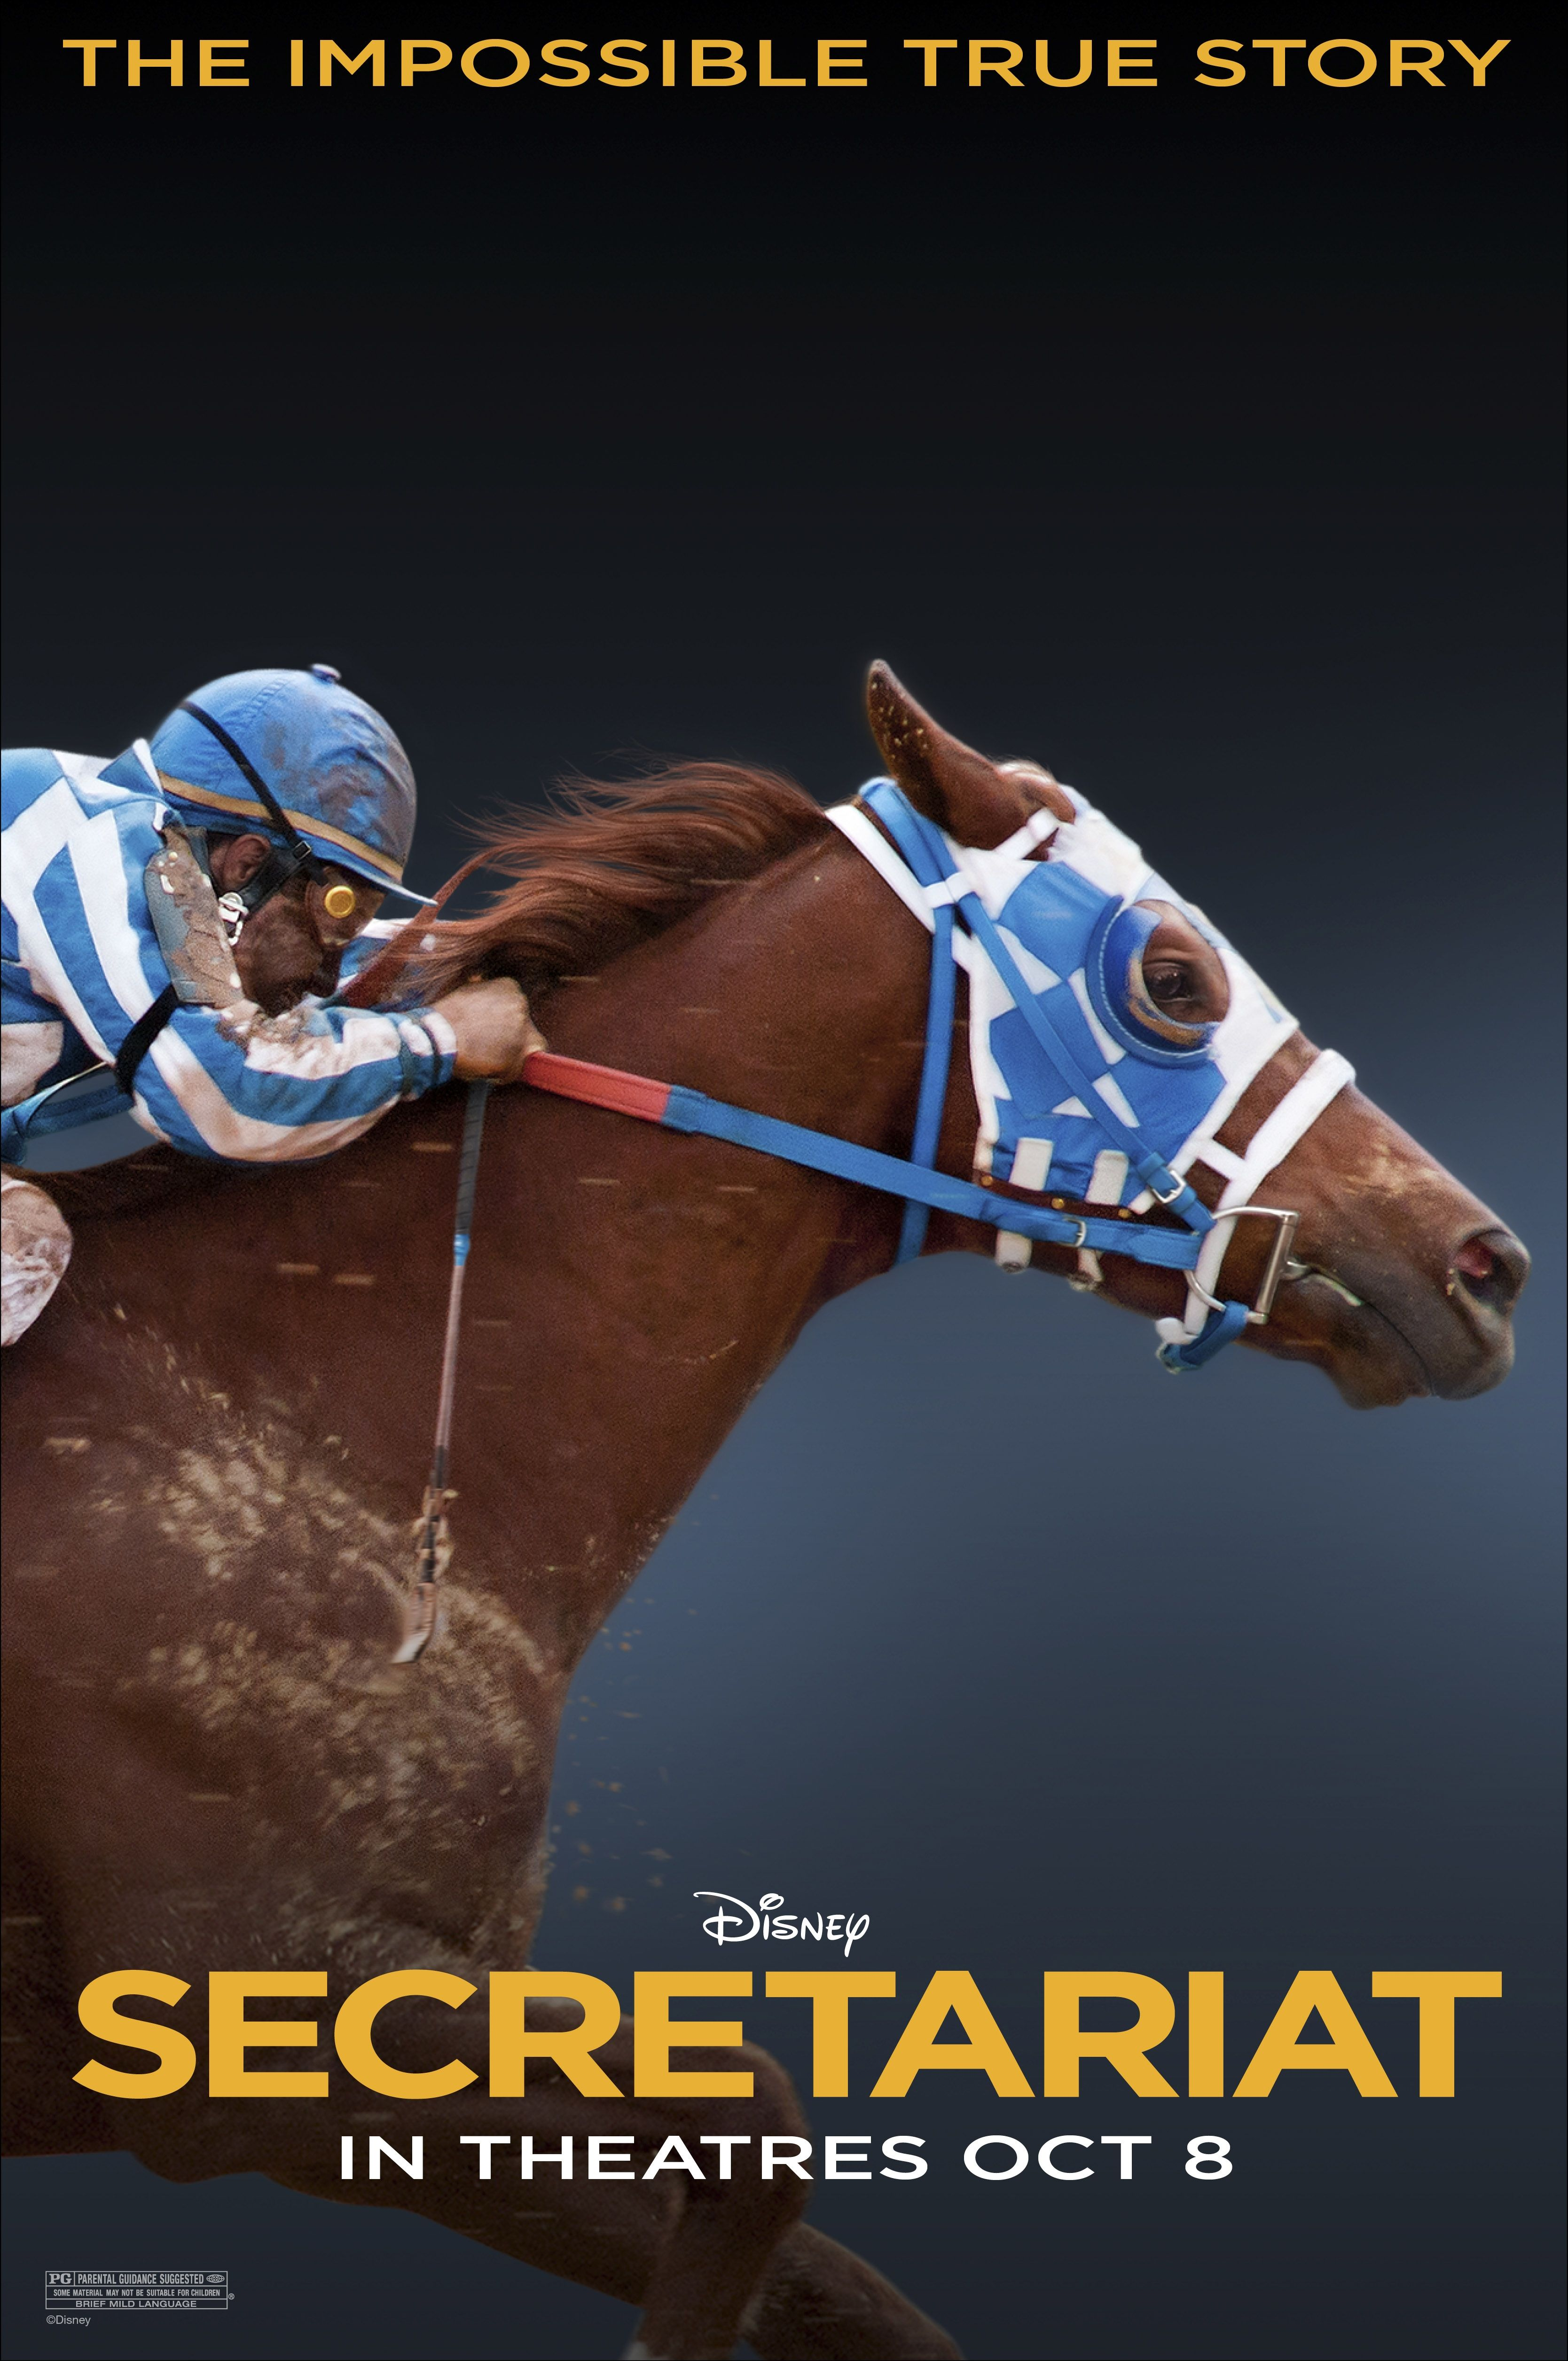 Most of the racing scenes from the movie Secretariat were shot at Keeneland.